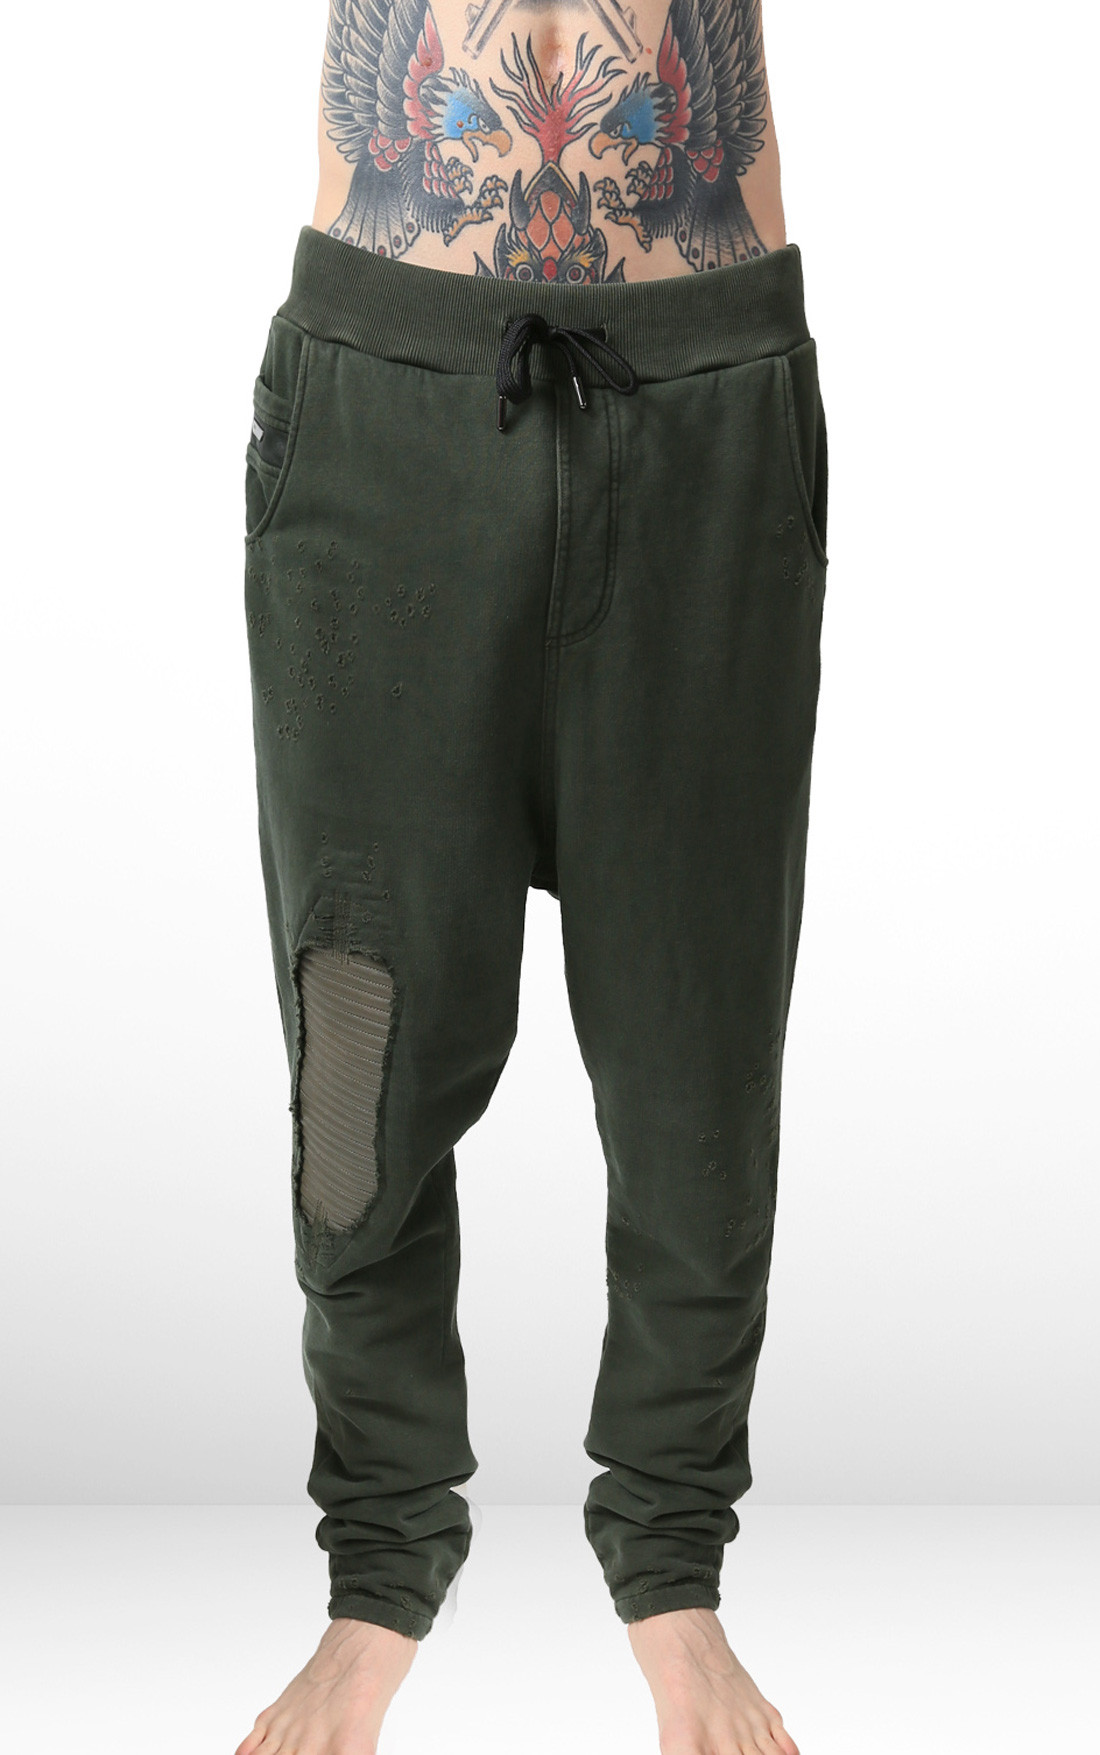 RH45 - Green Sweatpants with Leather (P401)